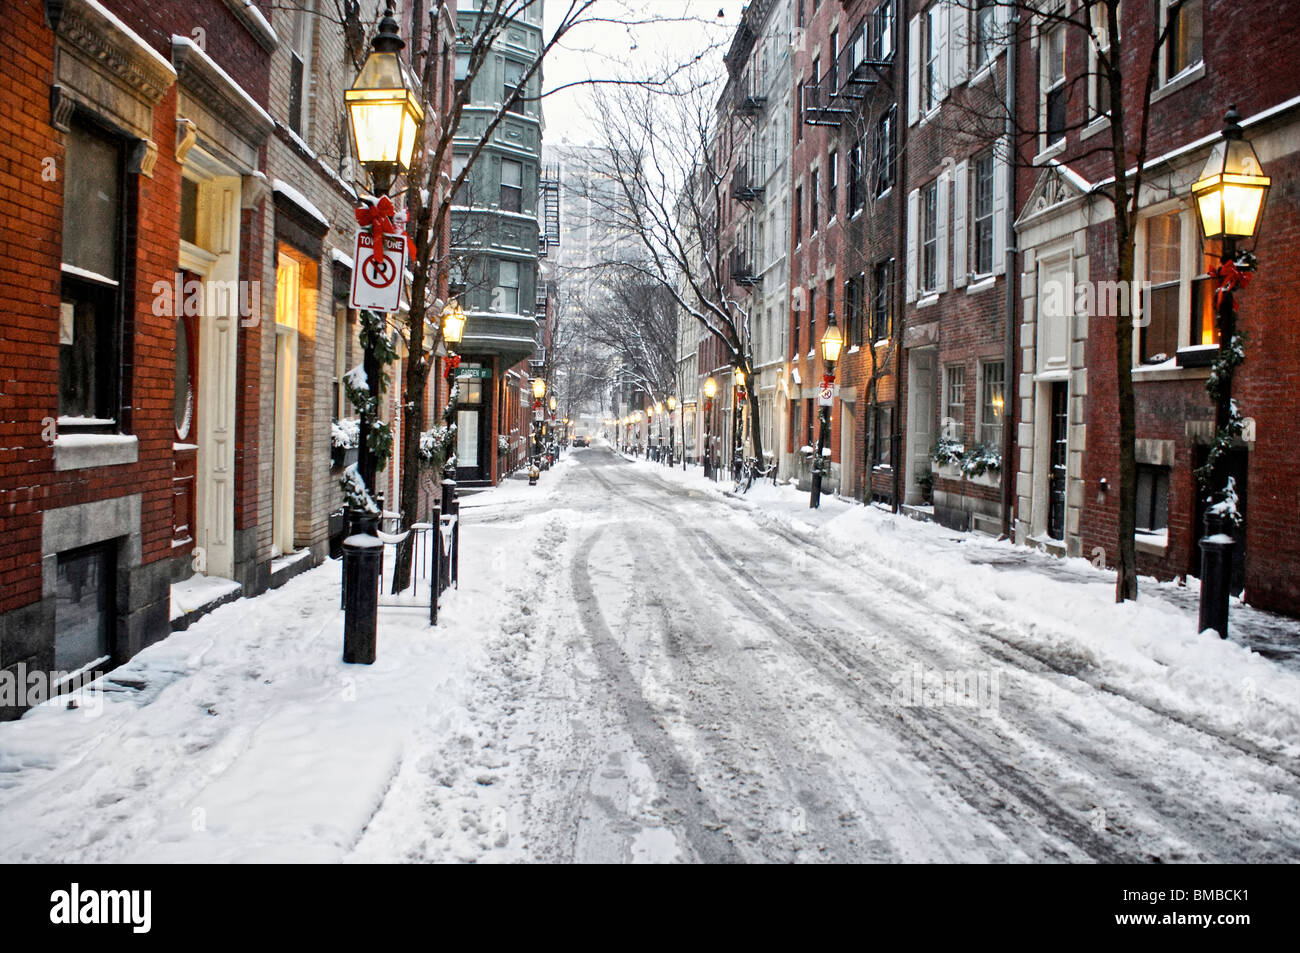 beautiful image of snow covered street with christmas